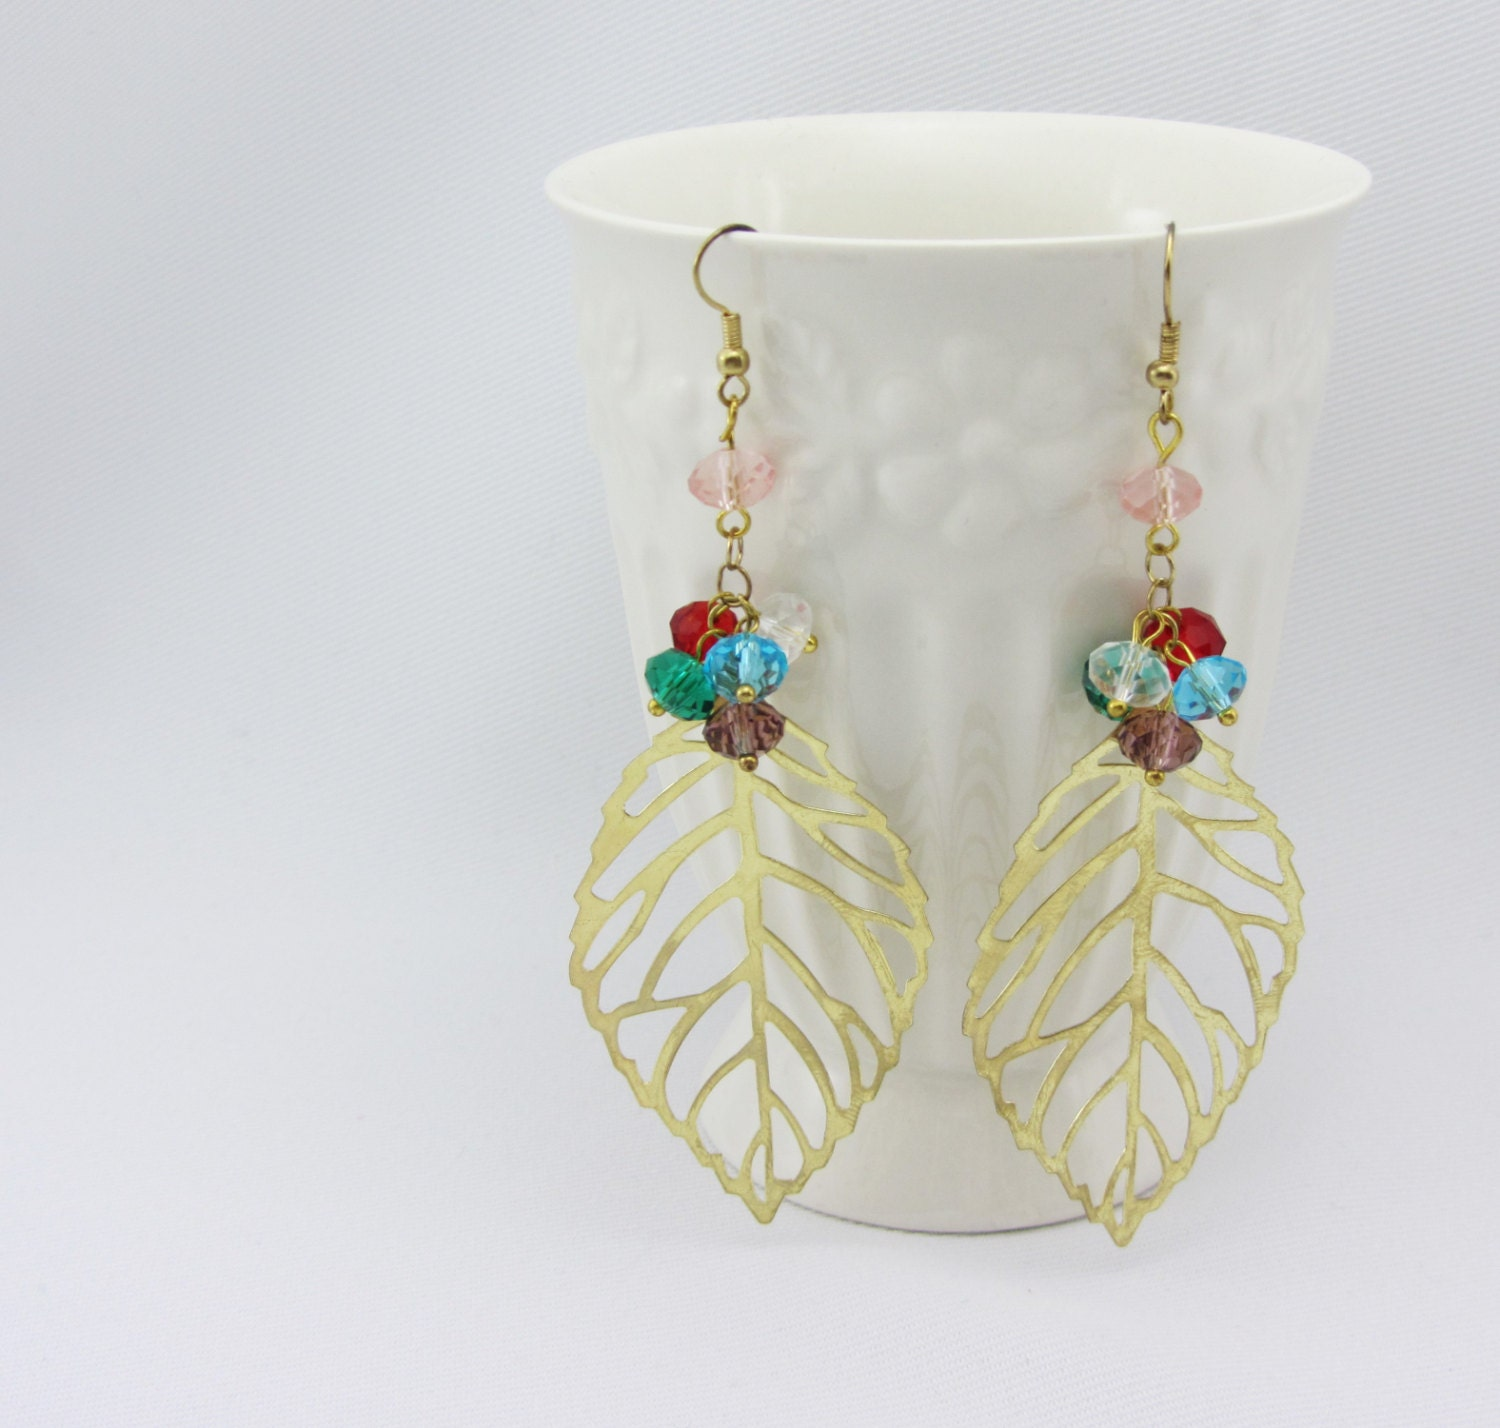 gold leaf filigree earrings with crystals